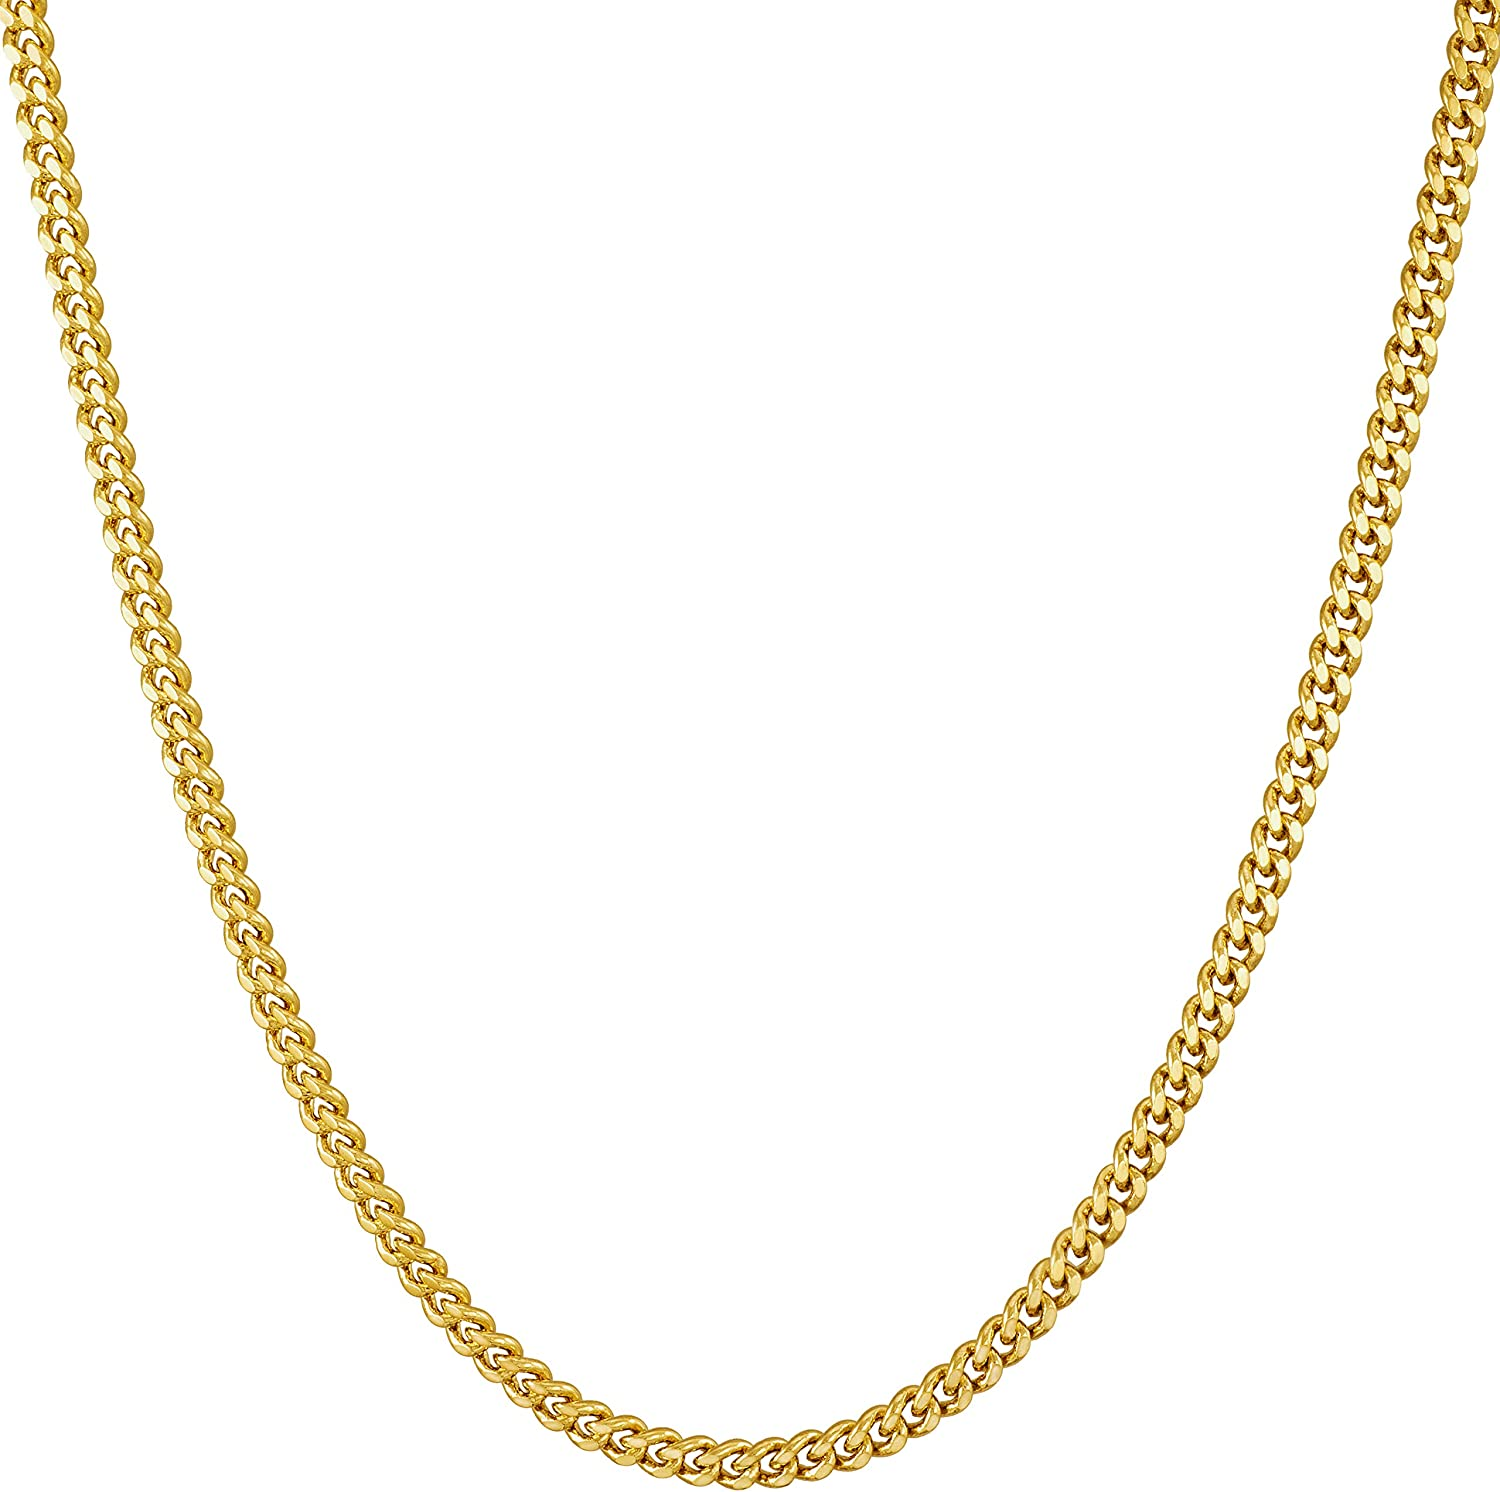 Lifetime Jewelry 2.2mm Curb Link Chain Necklace for Women & Men 24k Gold Plated with Free Lifetime Replacement Guarantee